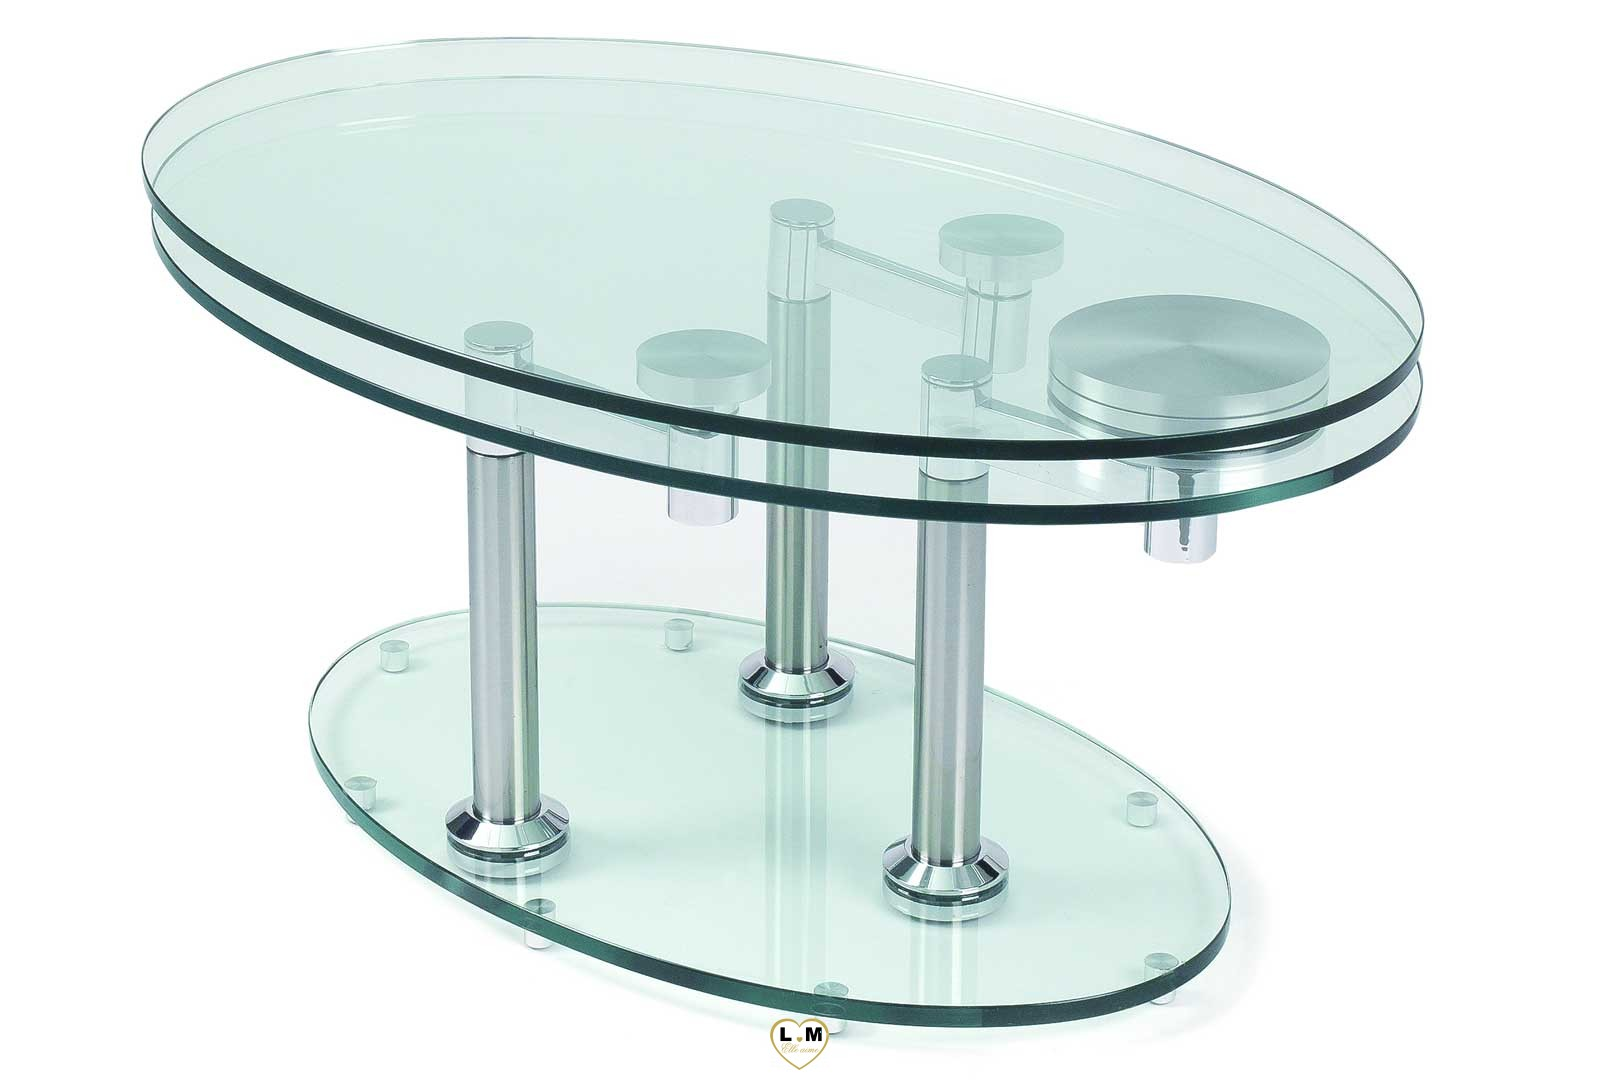 Table Basse Chrome Concorde Chrome Silver Table Basse Verre Articulee